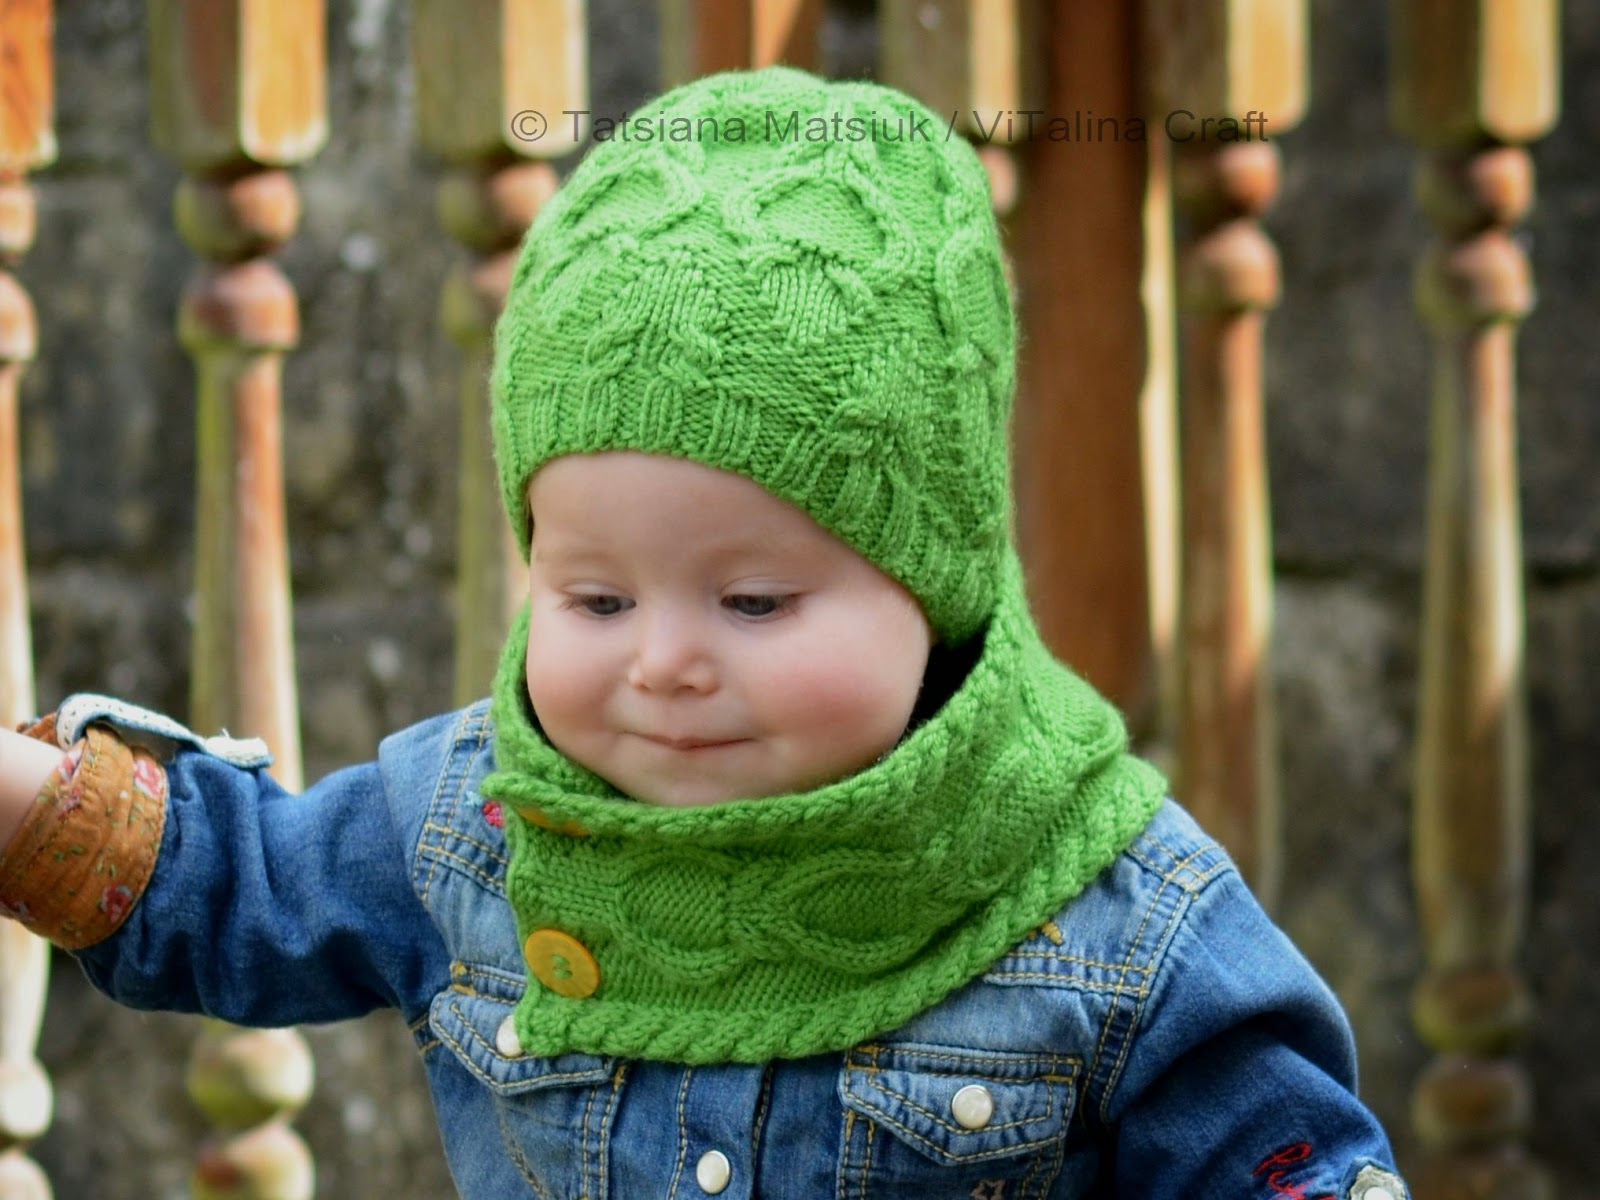 Rainforest Hat and Cowl Set Knitting Pattern | ViTalina Craft